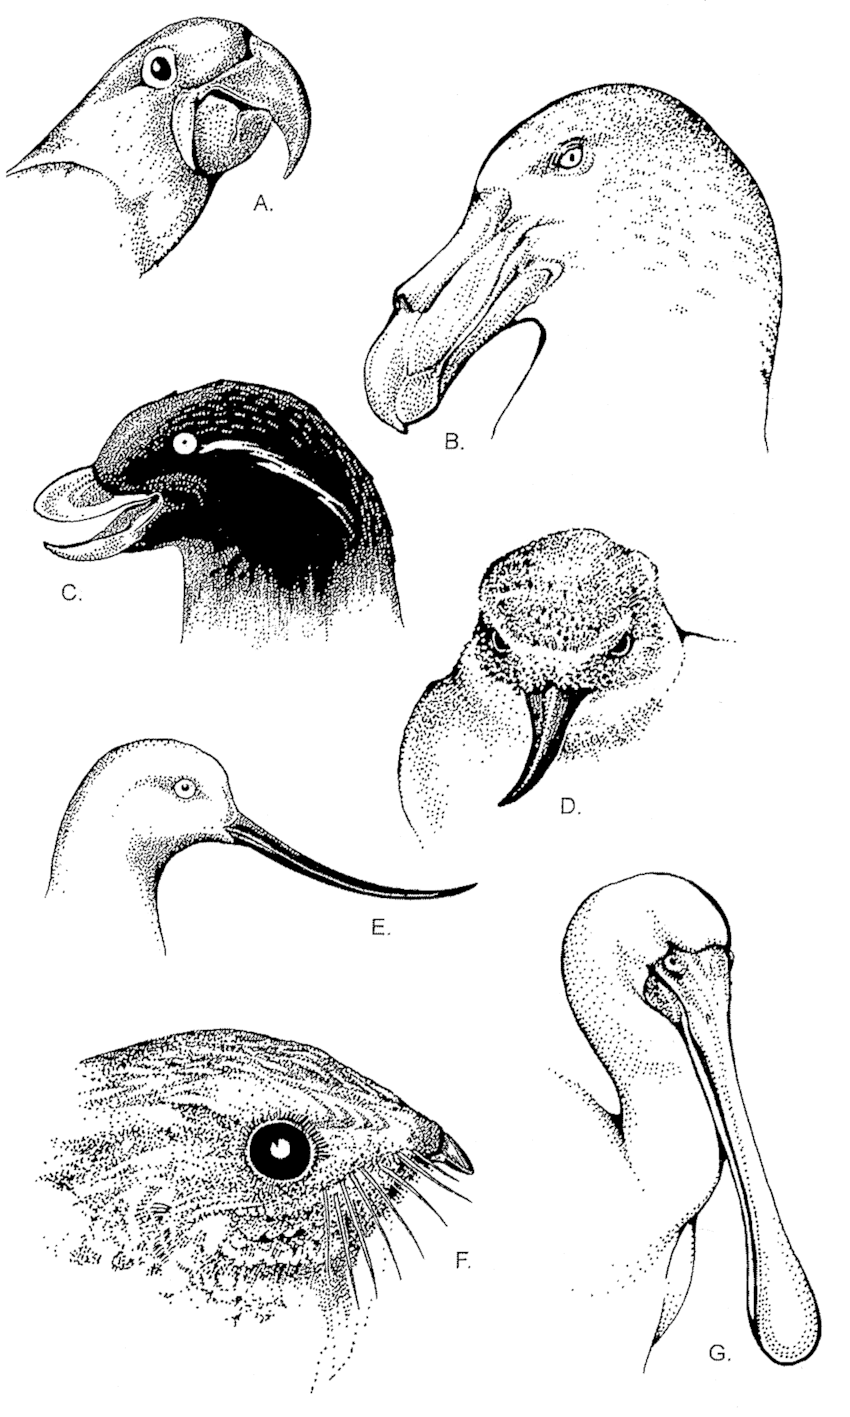 6. Diversity of the jaws and beak in birds. Birds lack